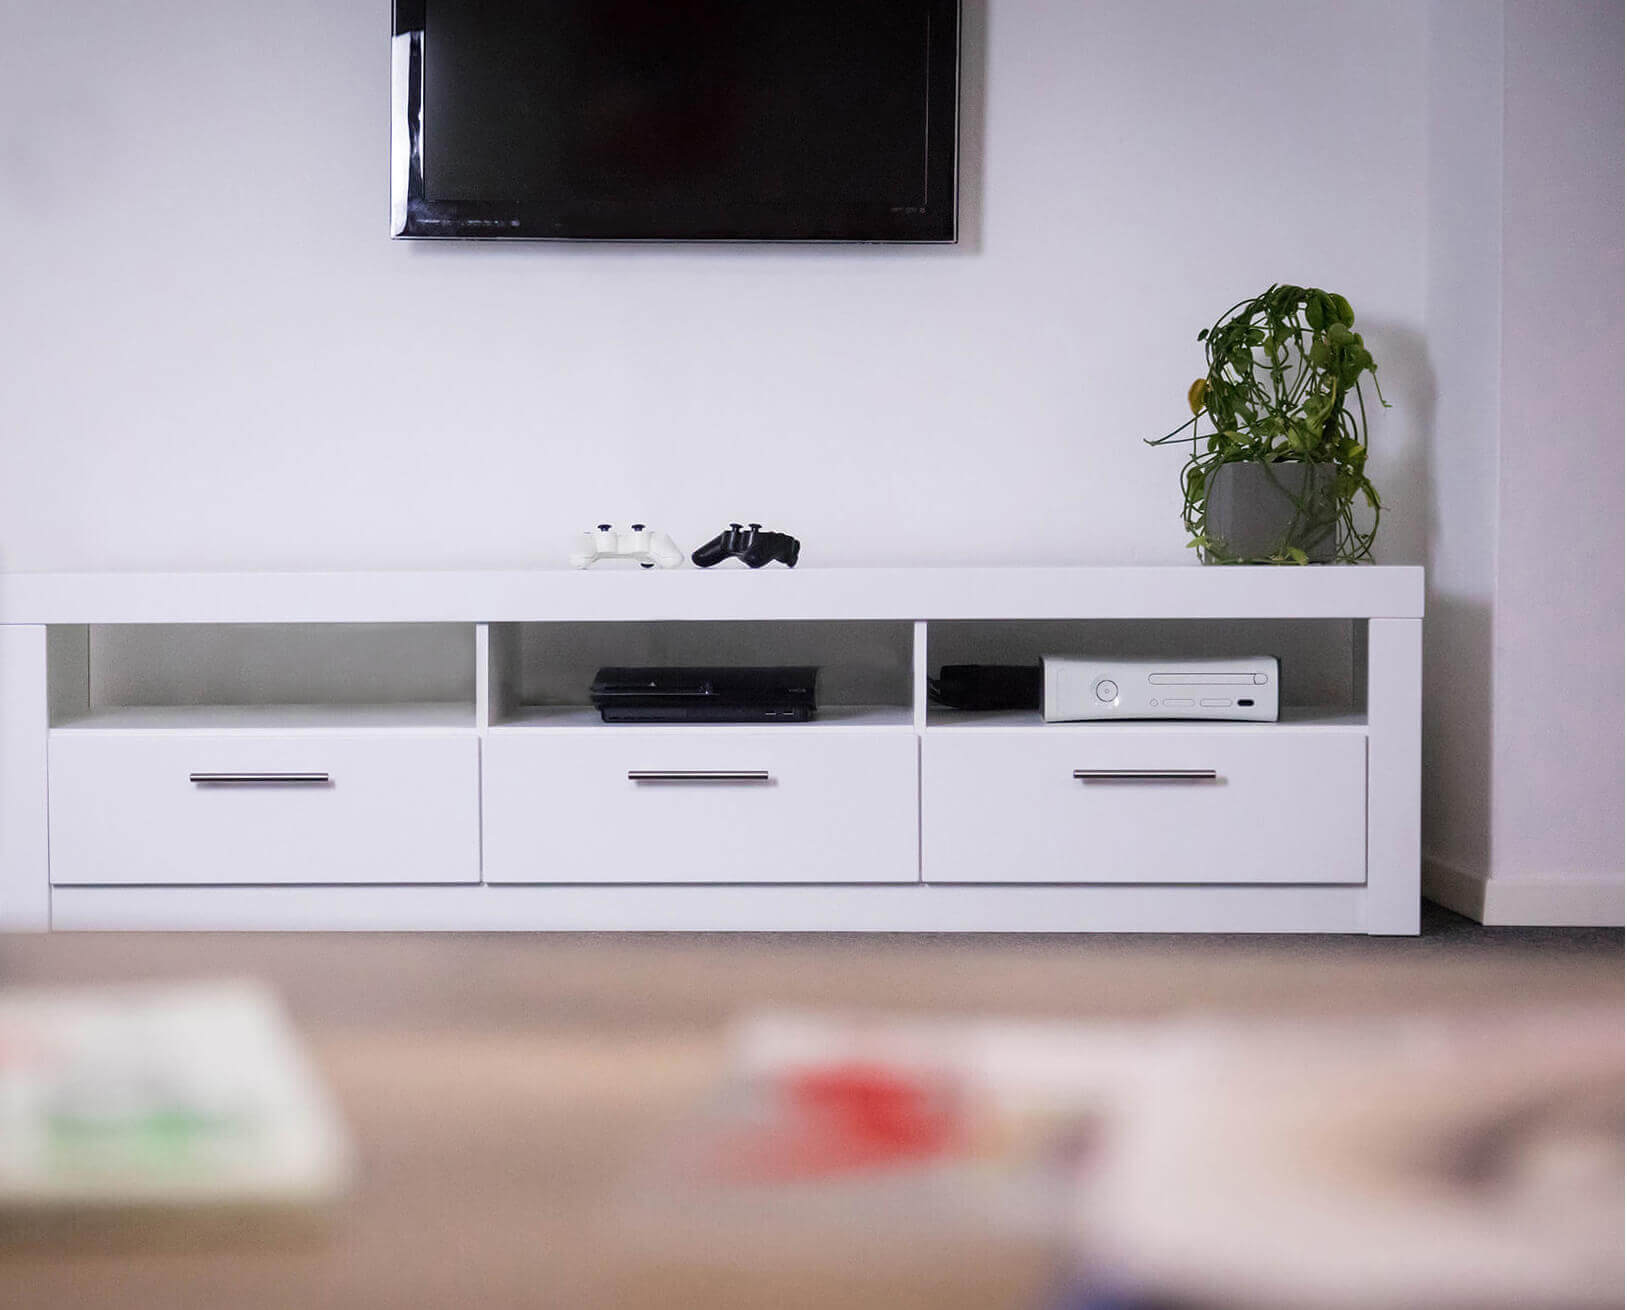 kundenprojekte aus dem hause dreibein. Black Bedroom Furniture Sets. Home Design Ideas